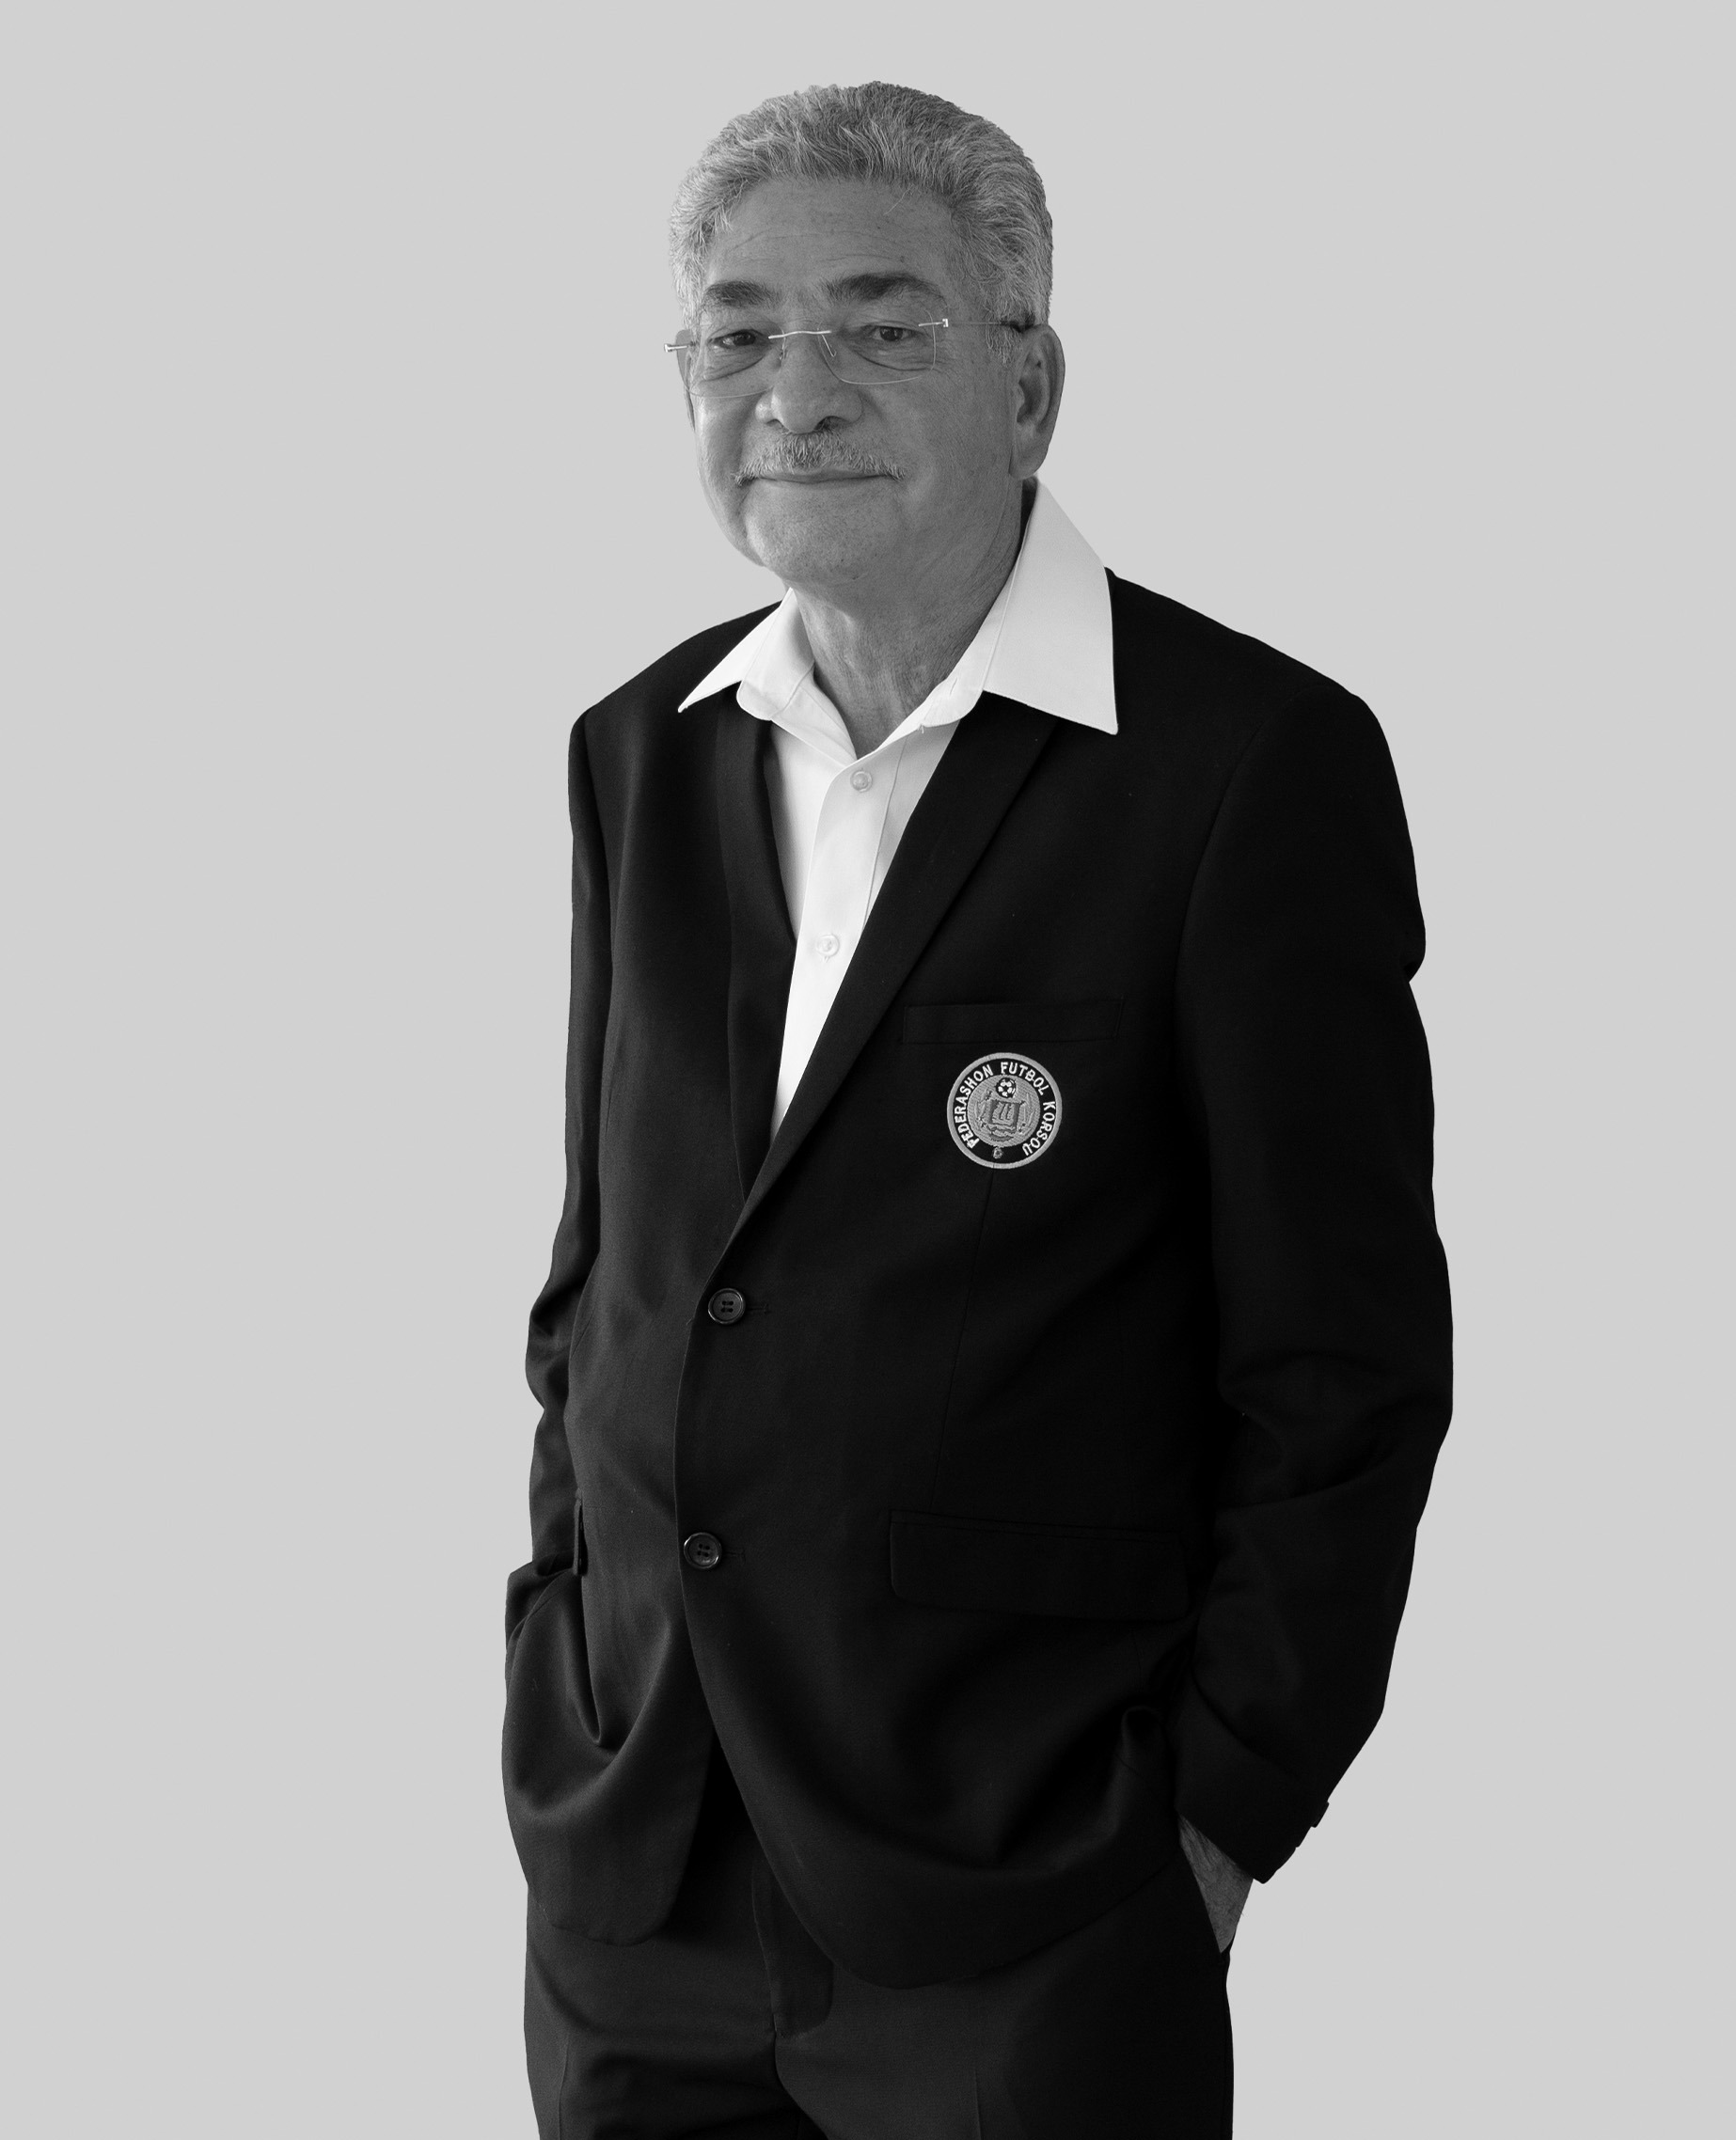 Stanley Coffie, is a board member of Curacao Football Federation.